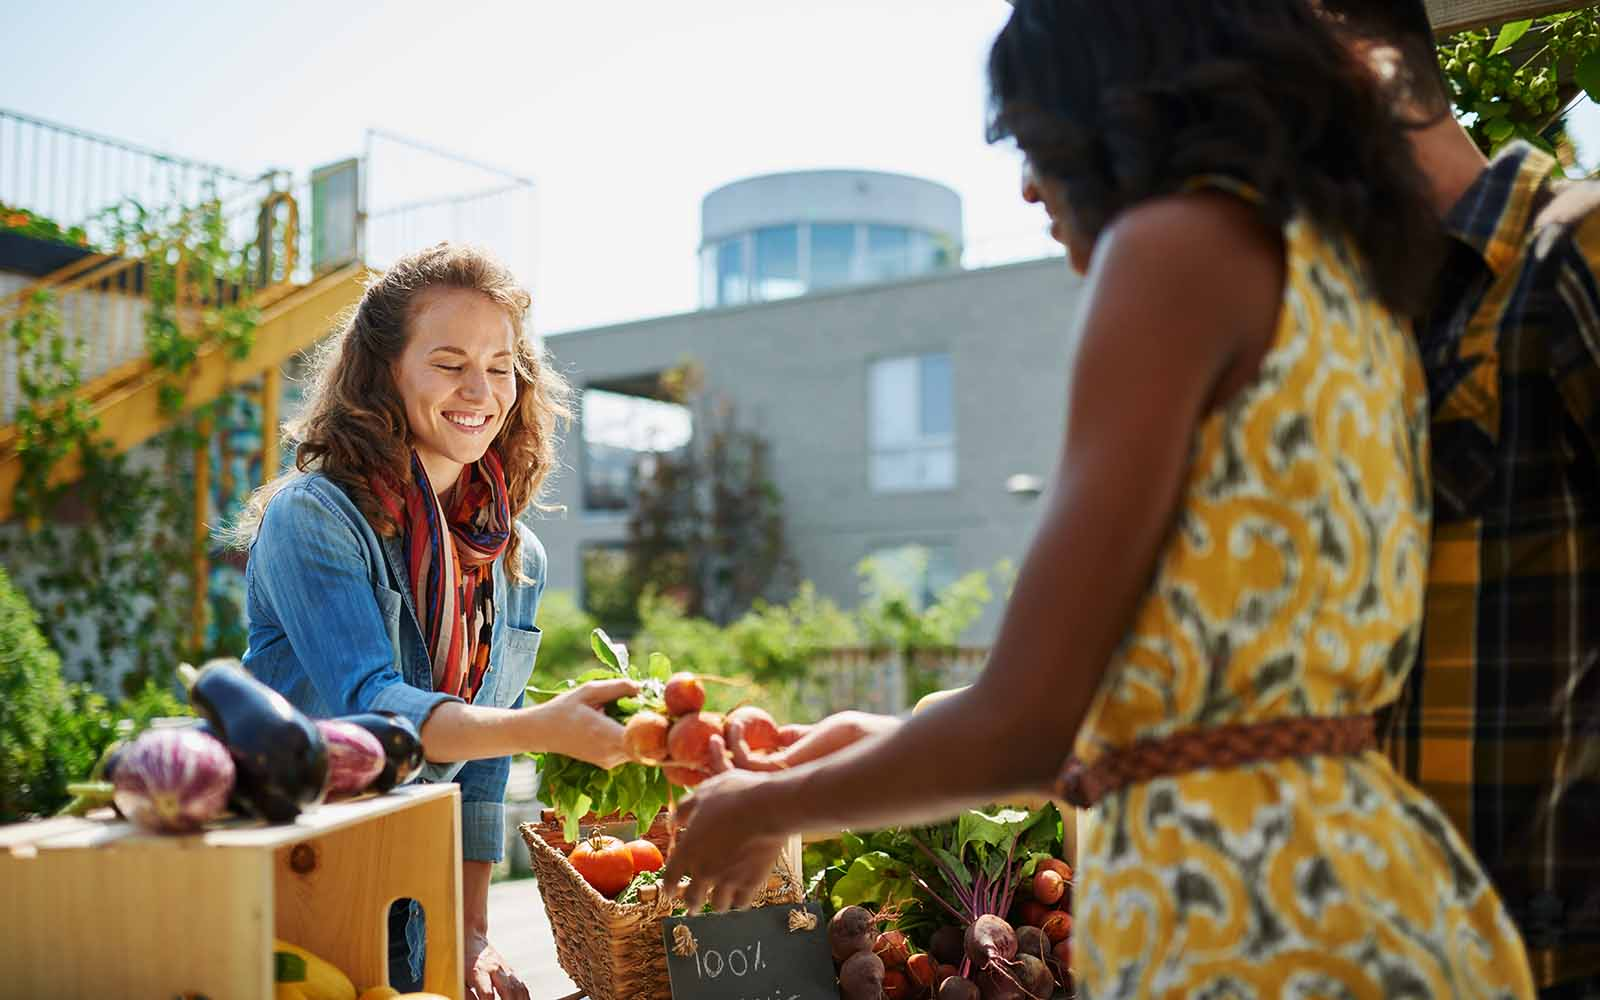 GrowFood benefits - Community